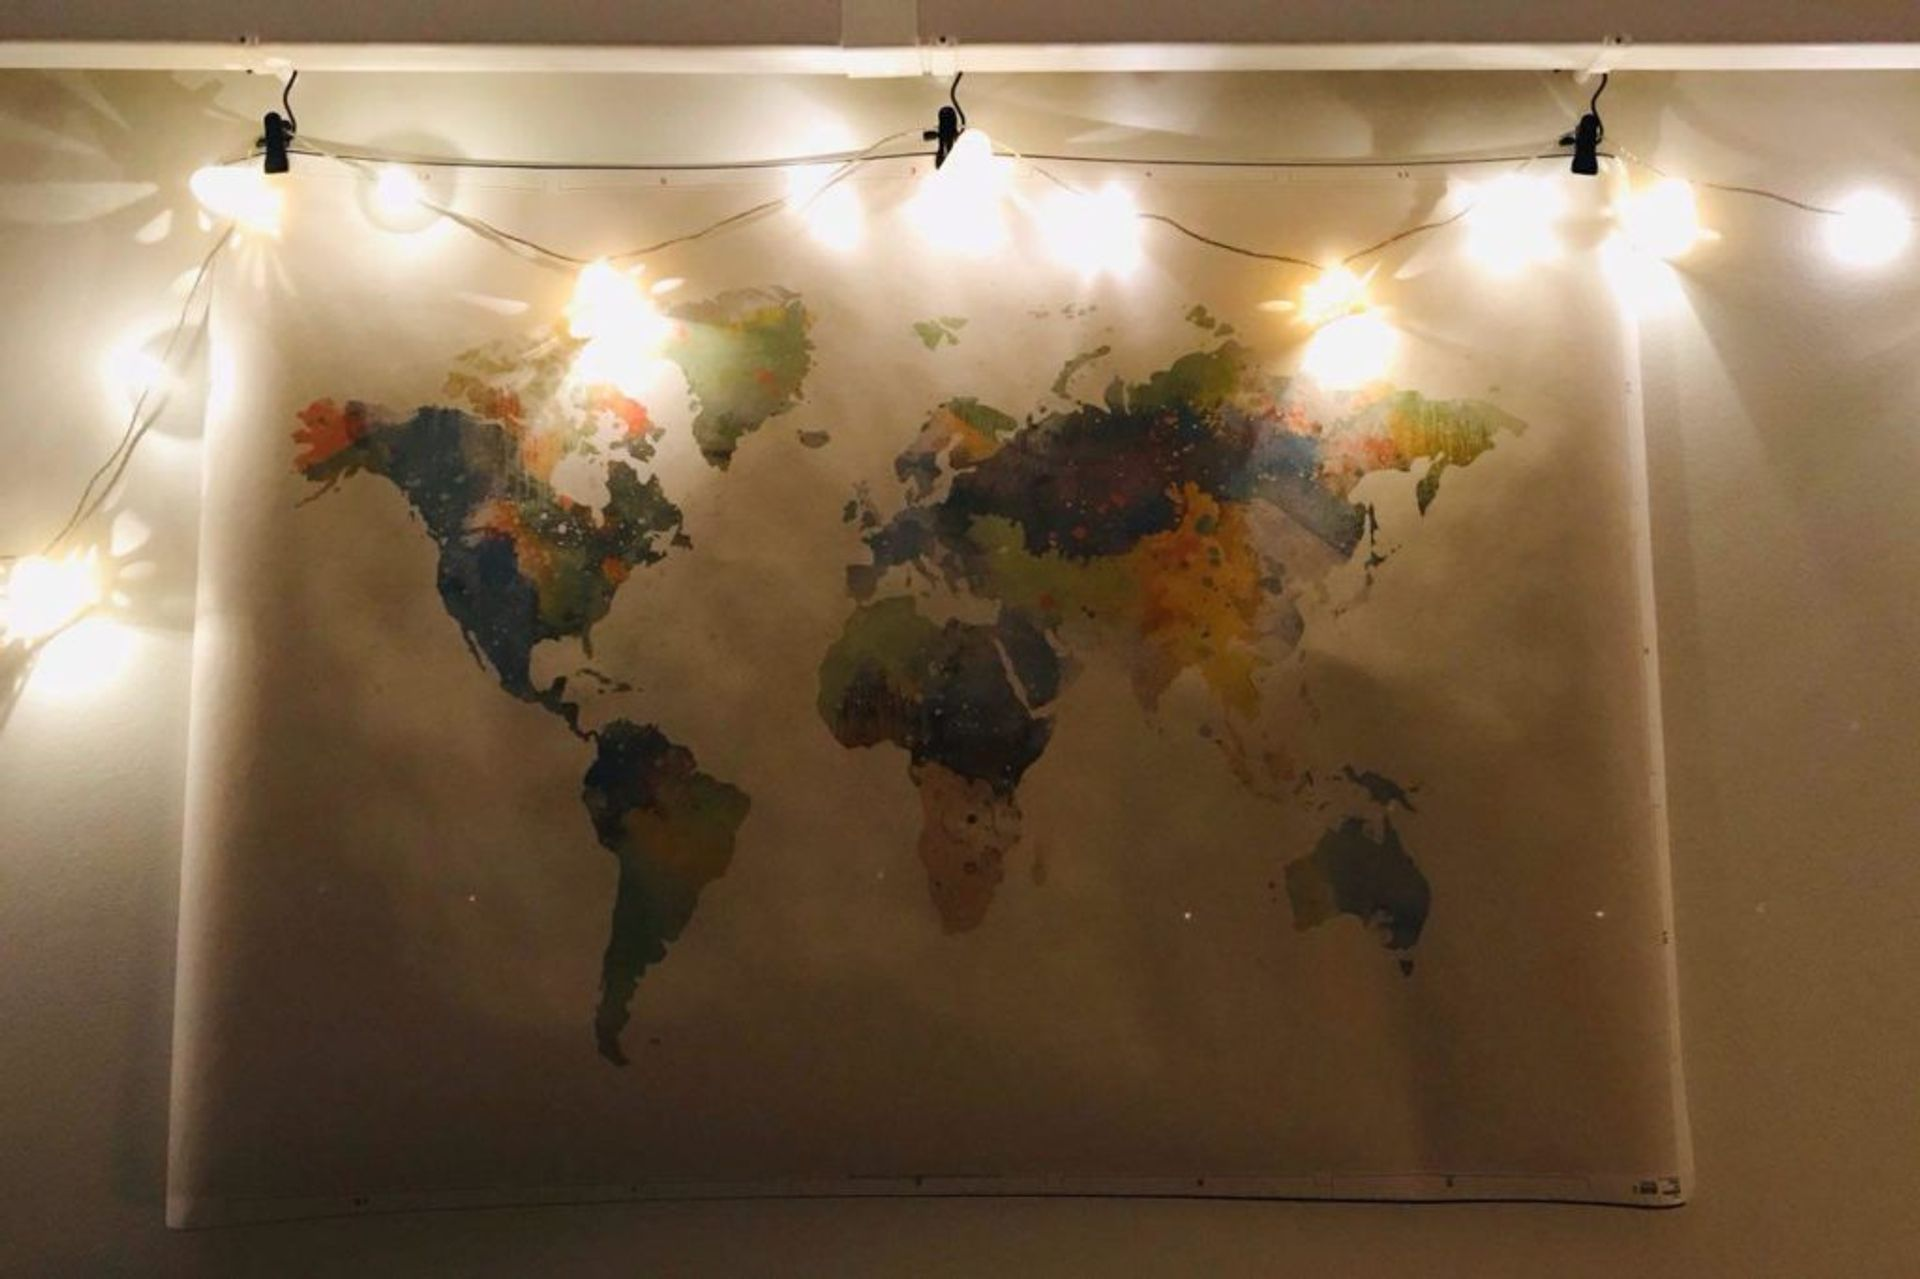 A world map hanging on a wall.